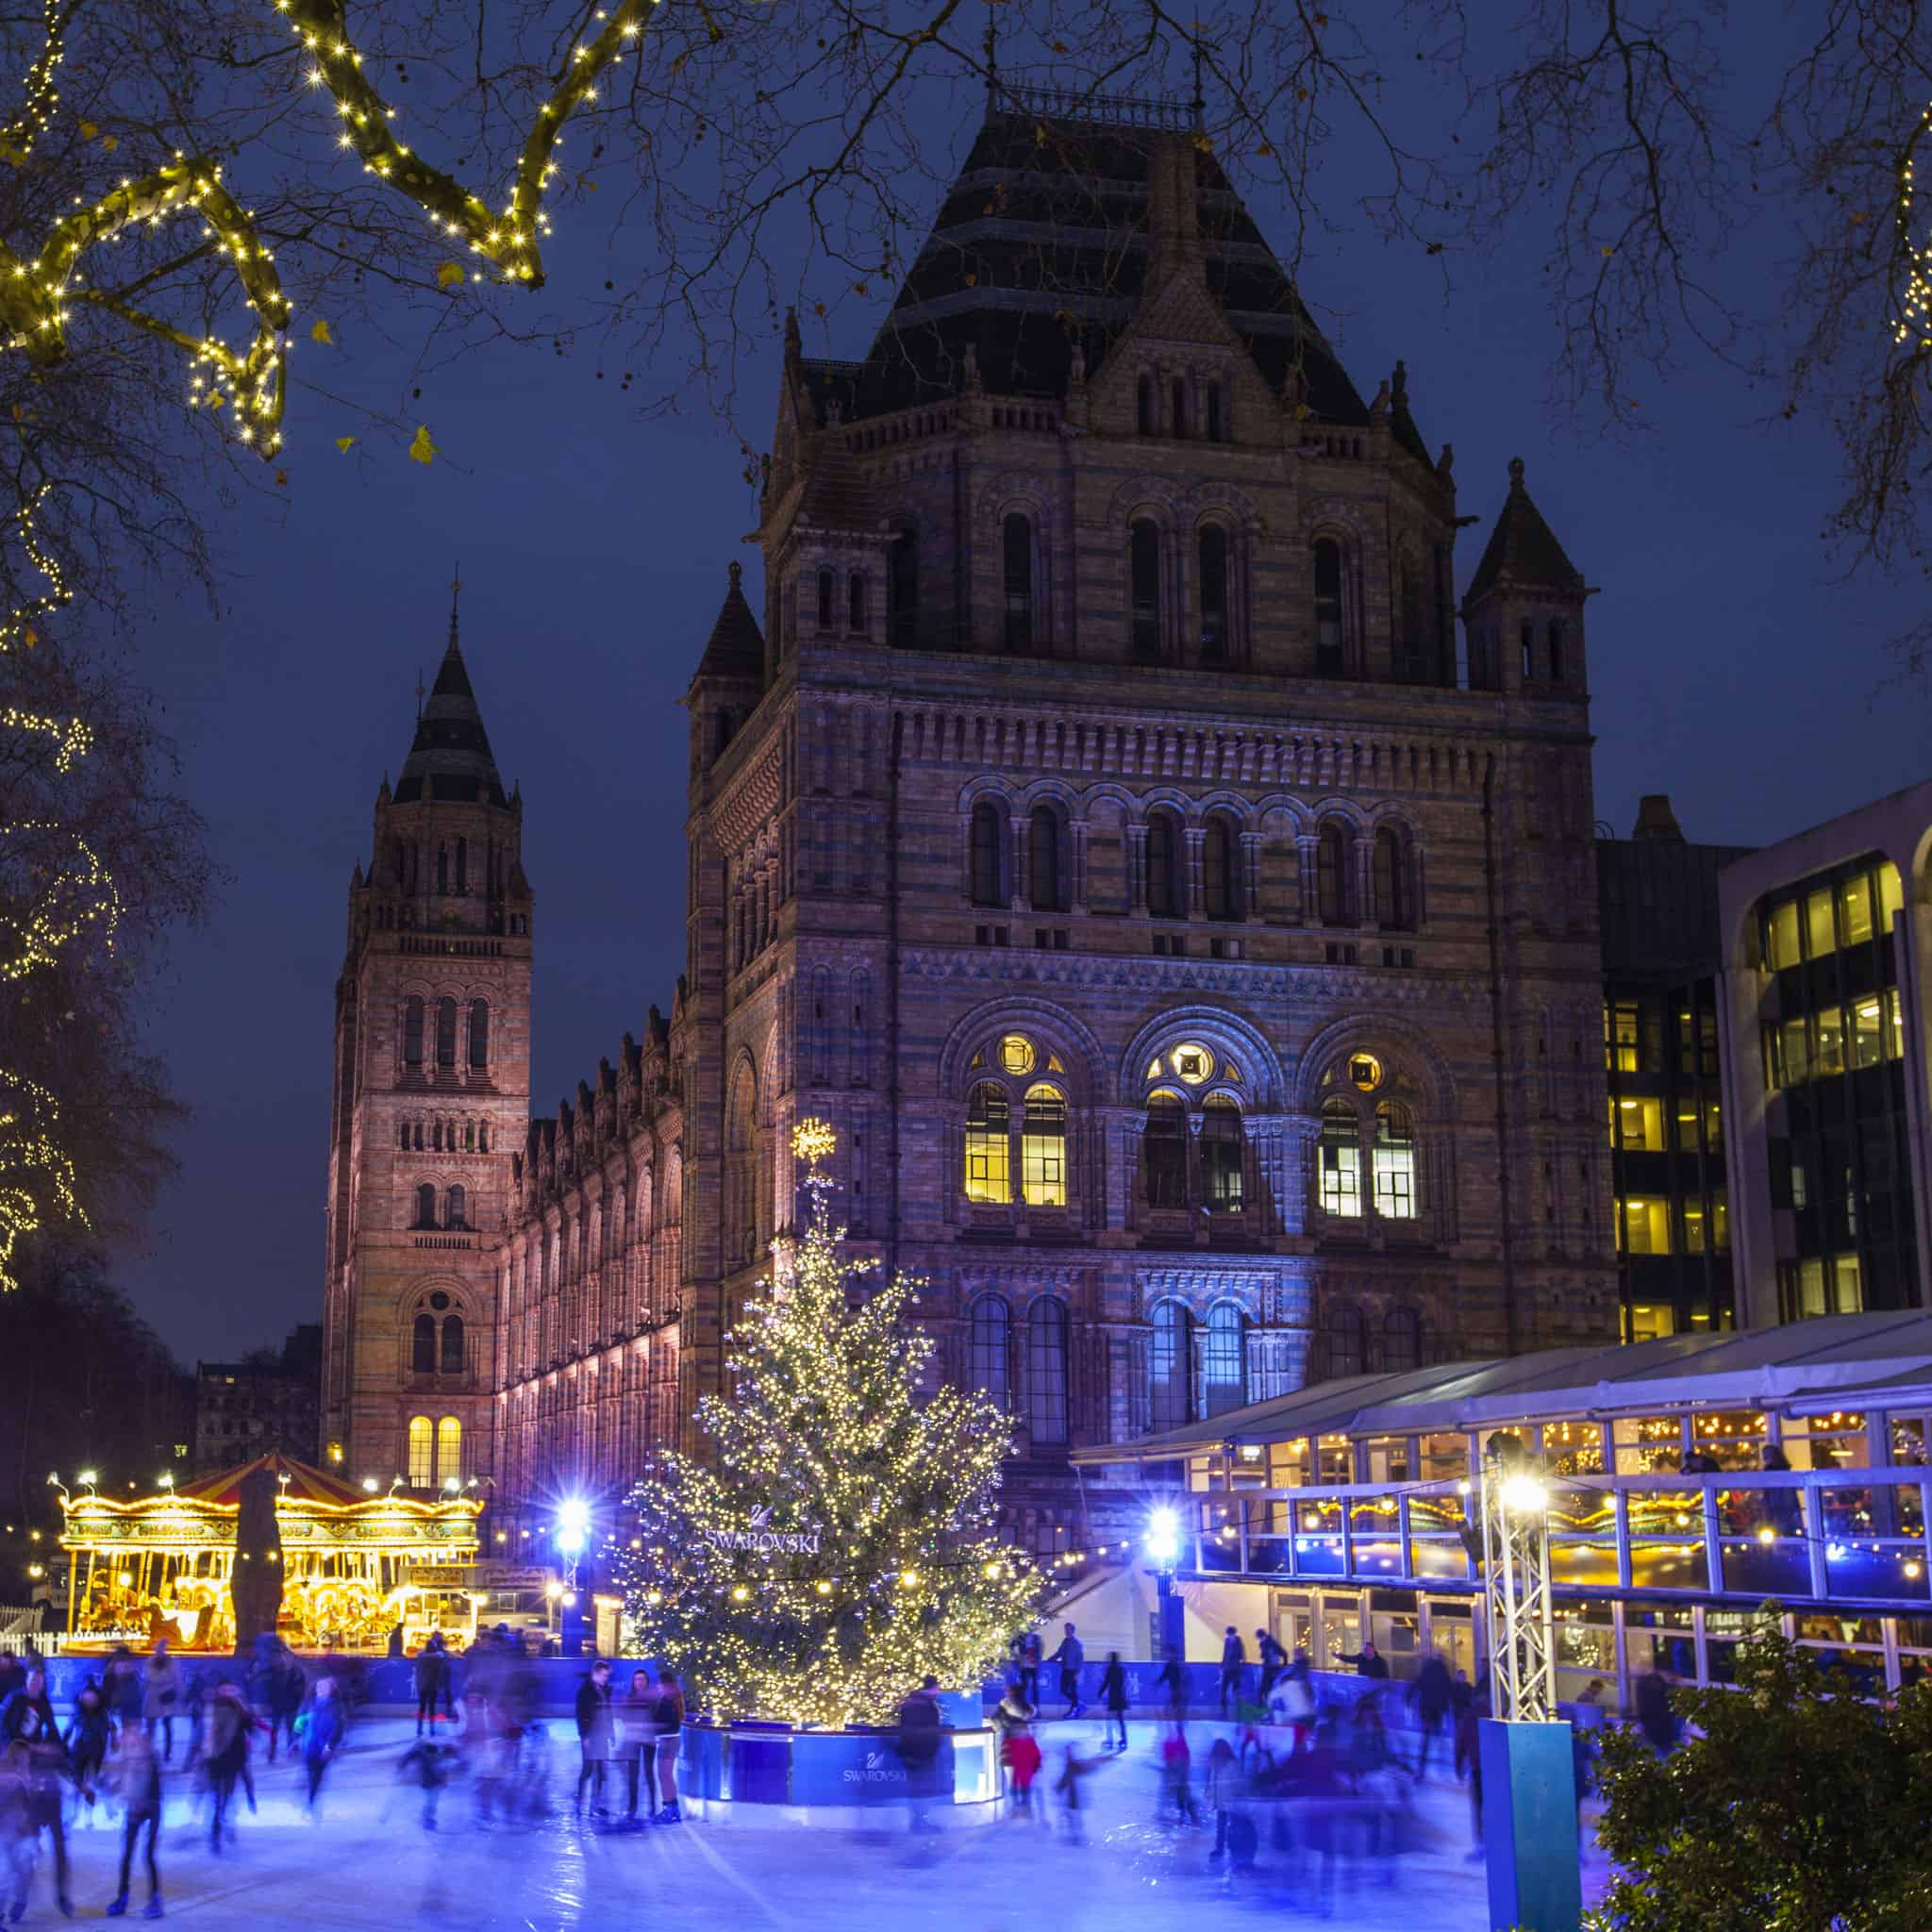 christmas-time-ice-rink-at-the-natural-history-museum-in-london